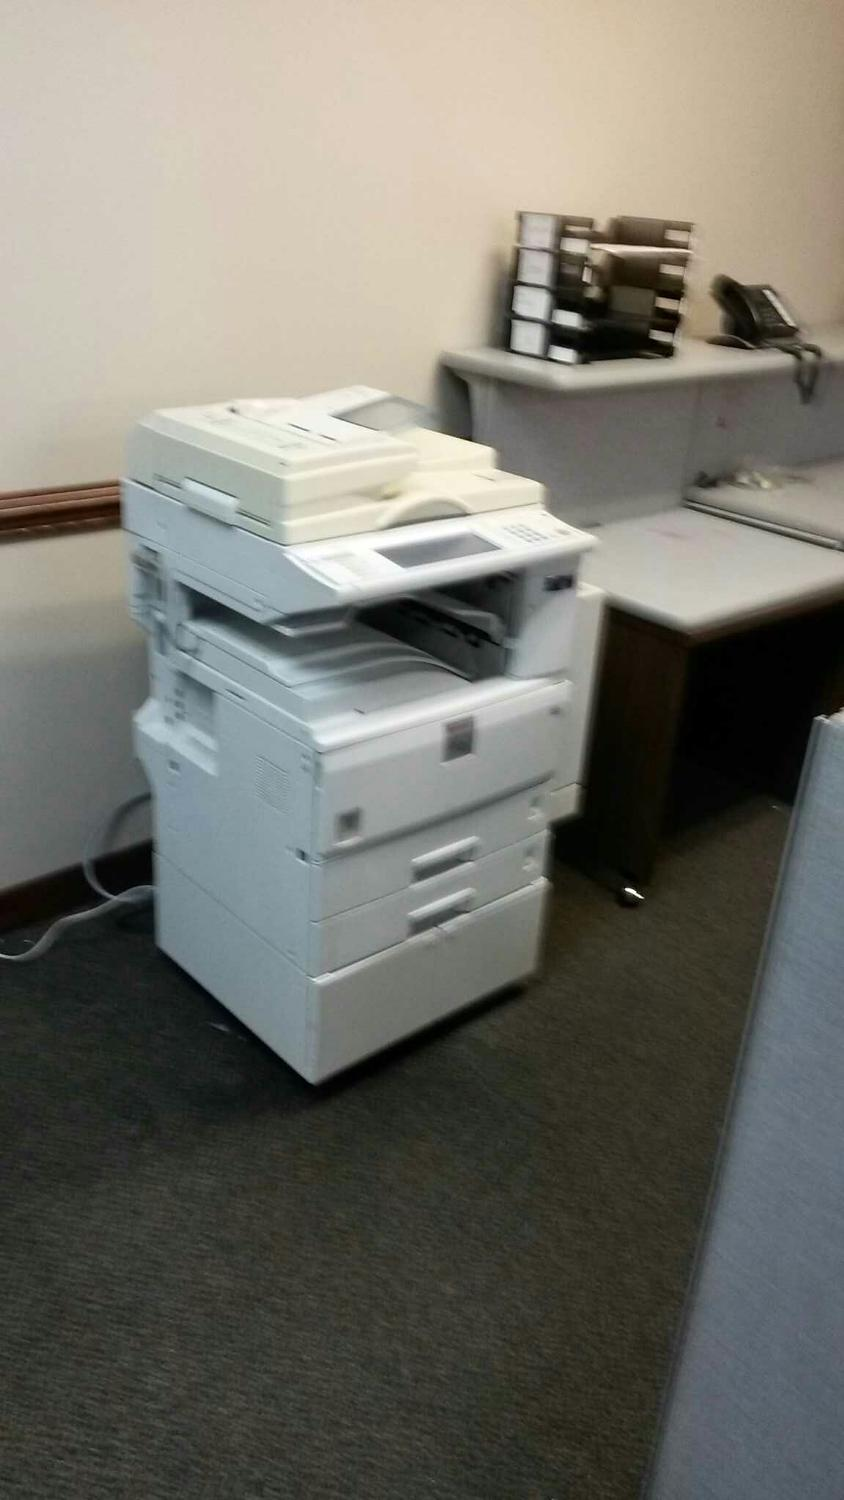 Find More Ricoh Savin Printer Copier Scanner Fax Reduced Final Markdown For Sale At Up To